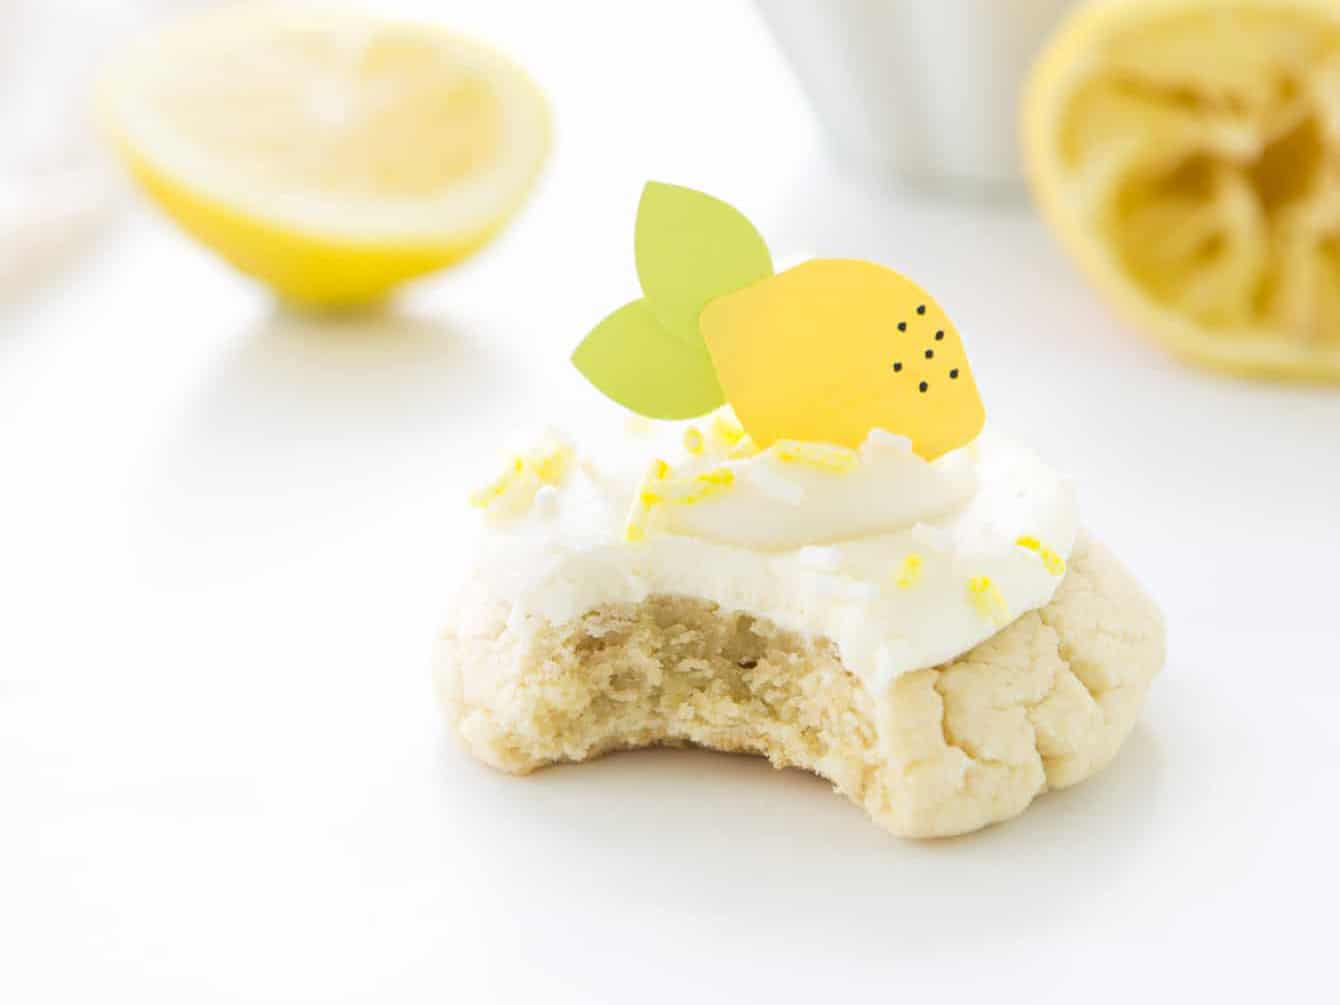 Lemon sugar cookie with cream cheese frosting with bite out of it.